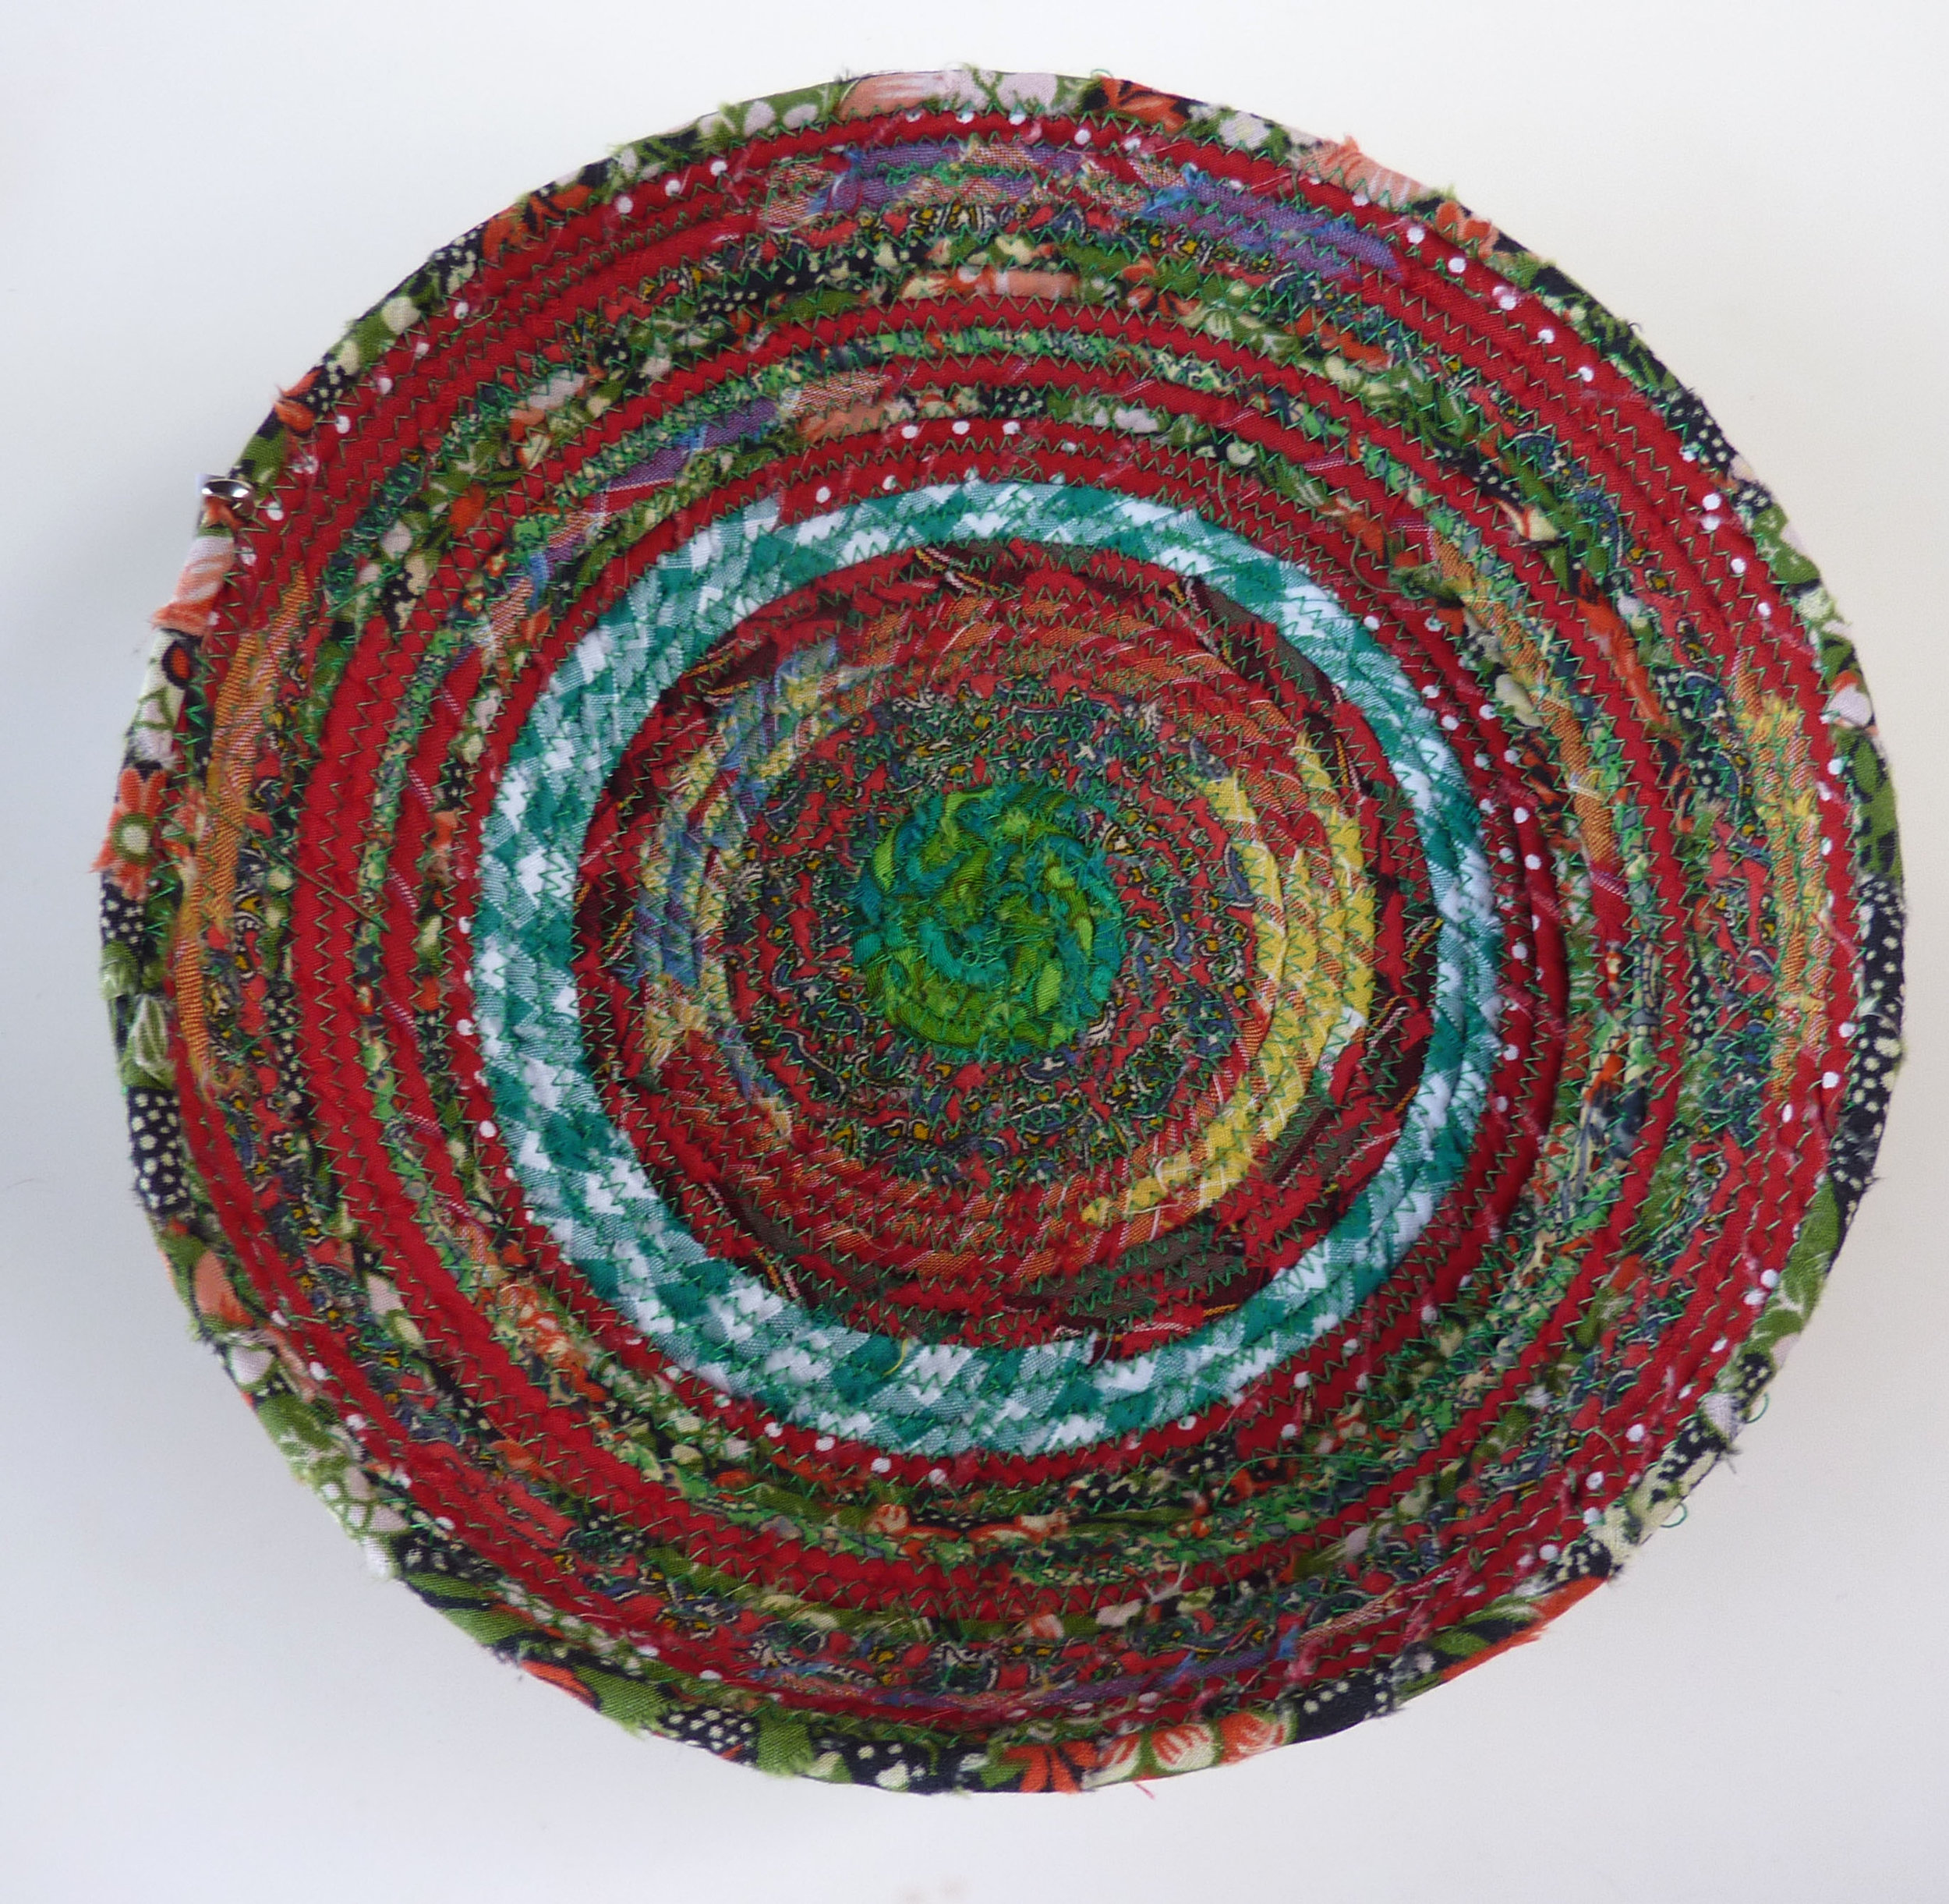 red & green coiled fabric basket